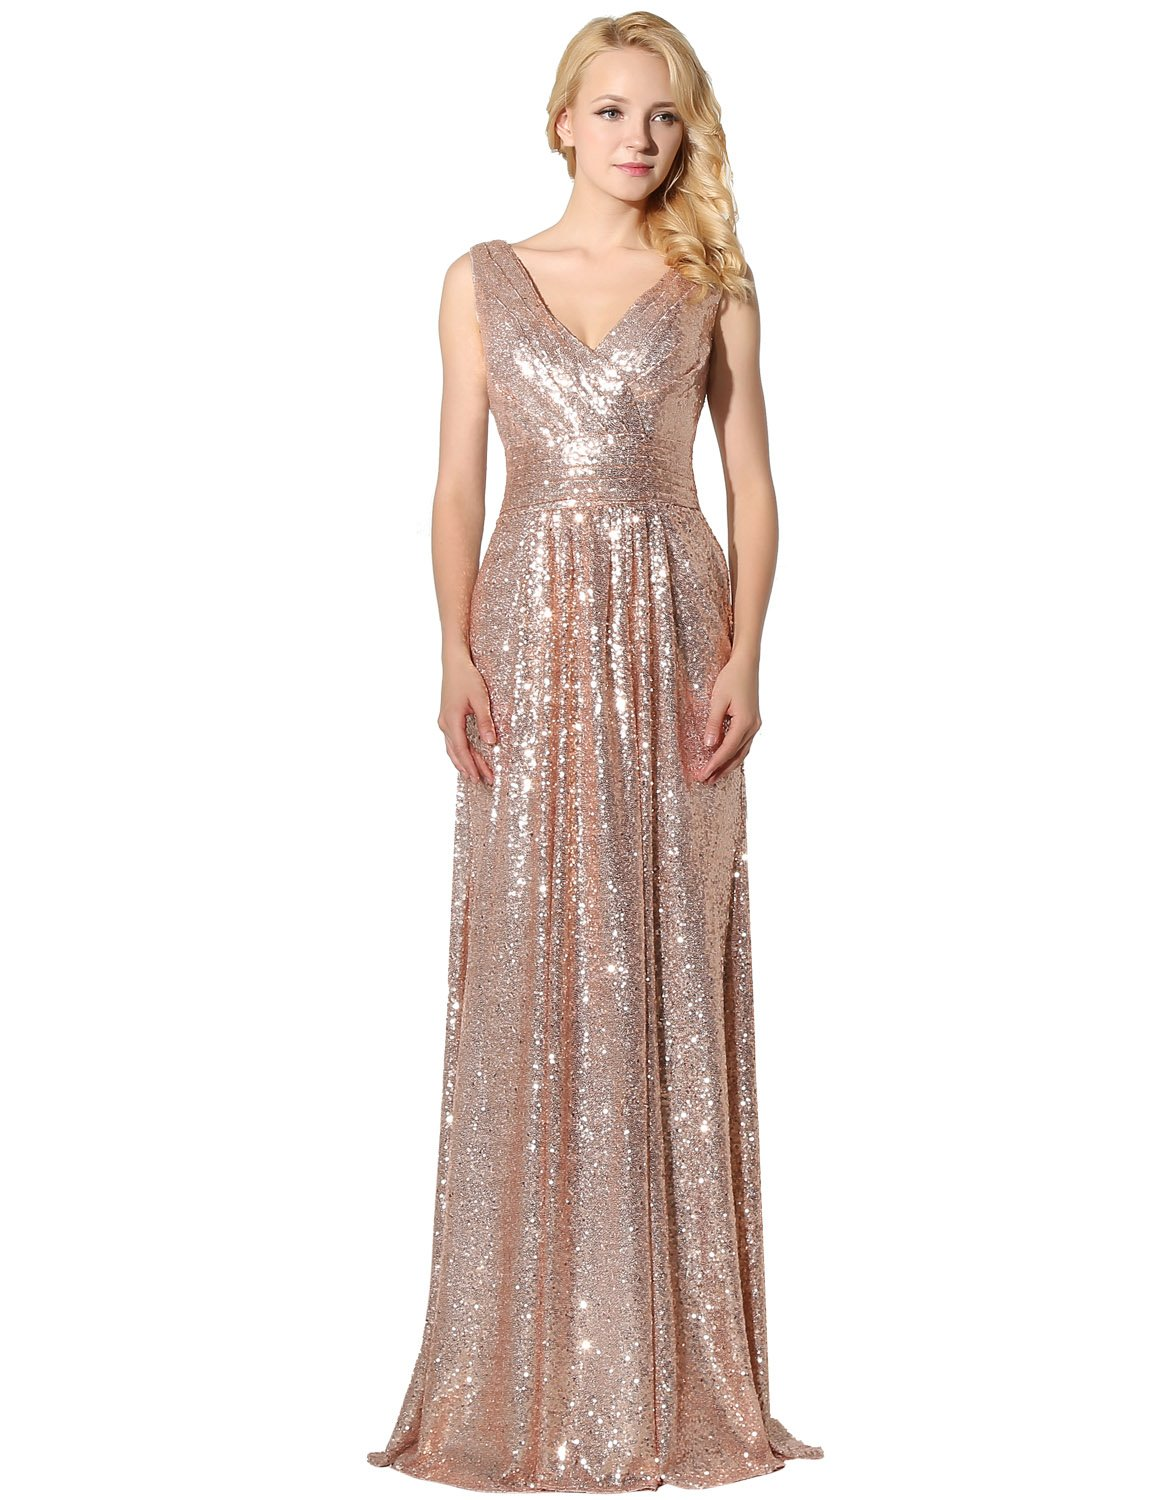 decbf661ef ... Prom Dresses 2018 Ball Gown Long Rose Gold Sequins Bridesmaid Dresses  SD349.   